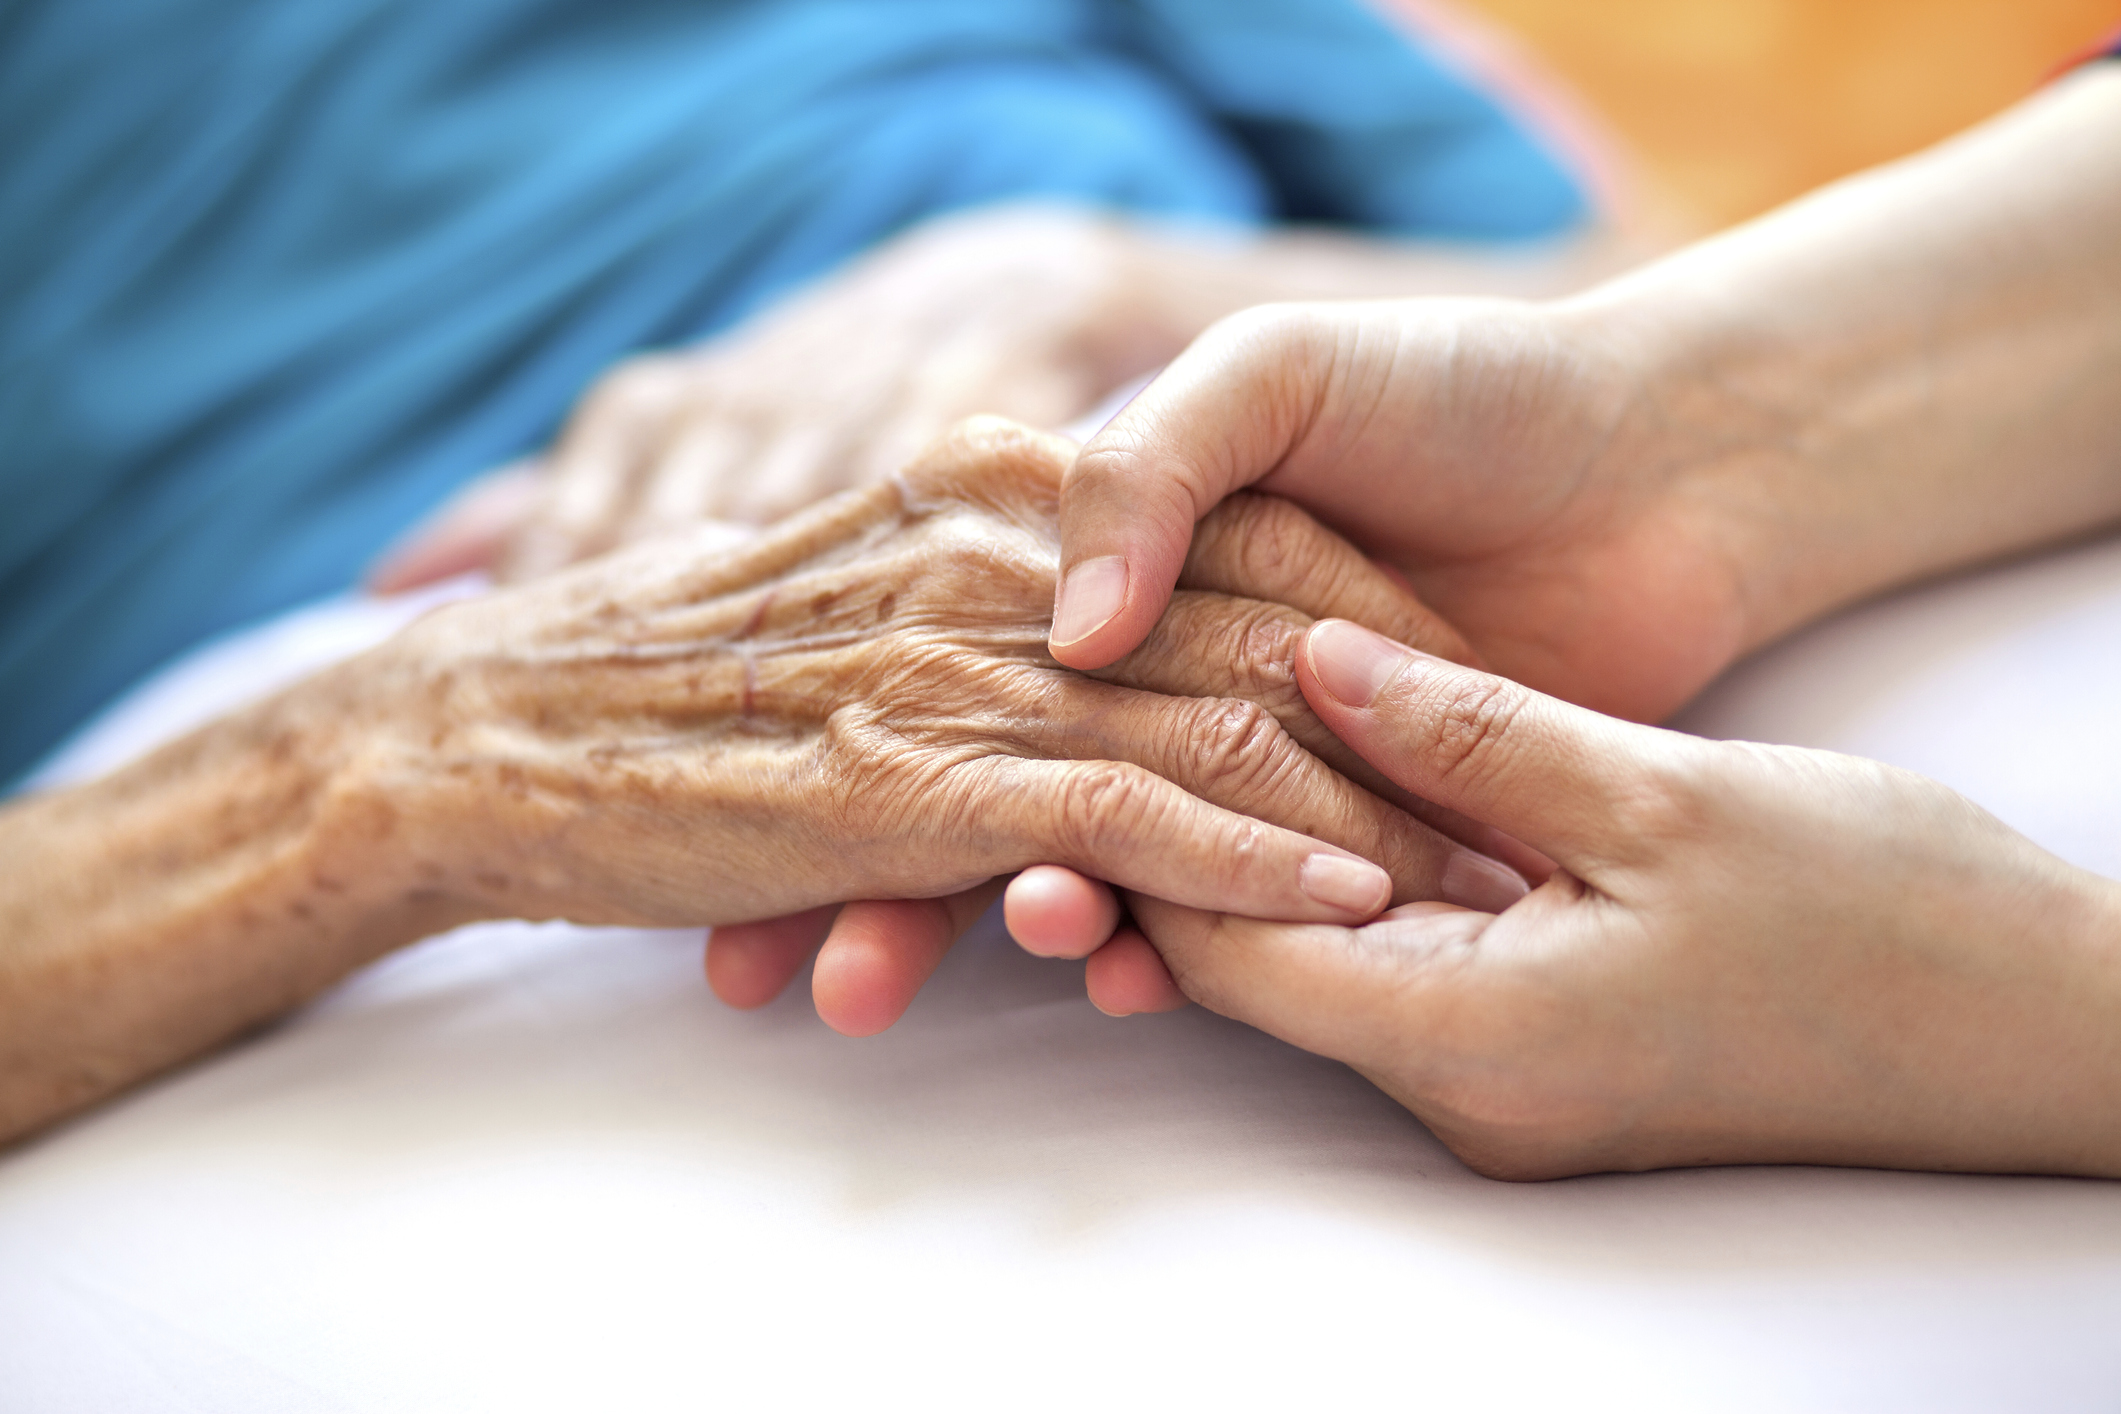 doctor examines a patient's hand with osteoarthritis